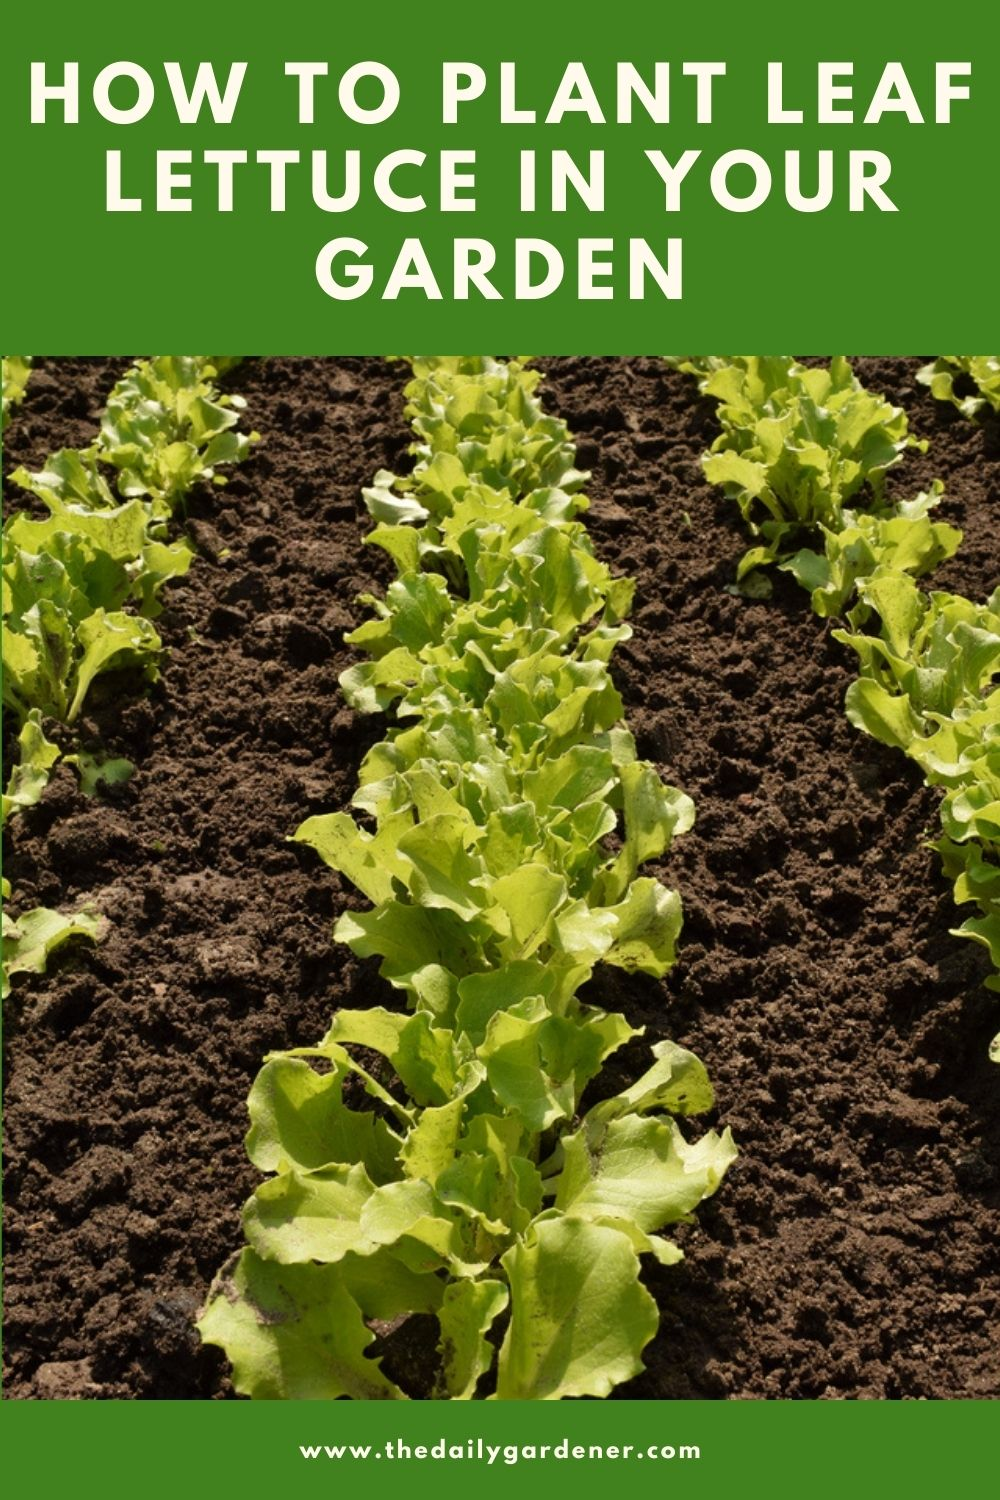 How to Plant Leaf Lettuce in Your Garden (Ticks to Care!) 2